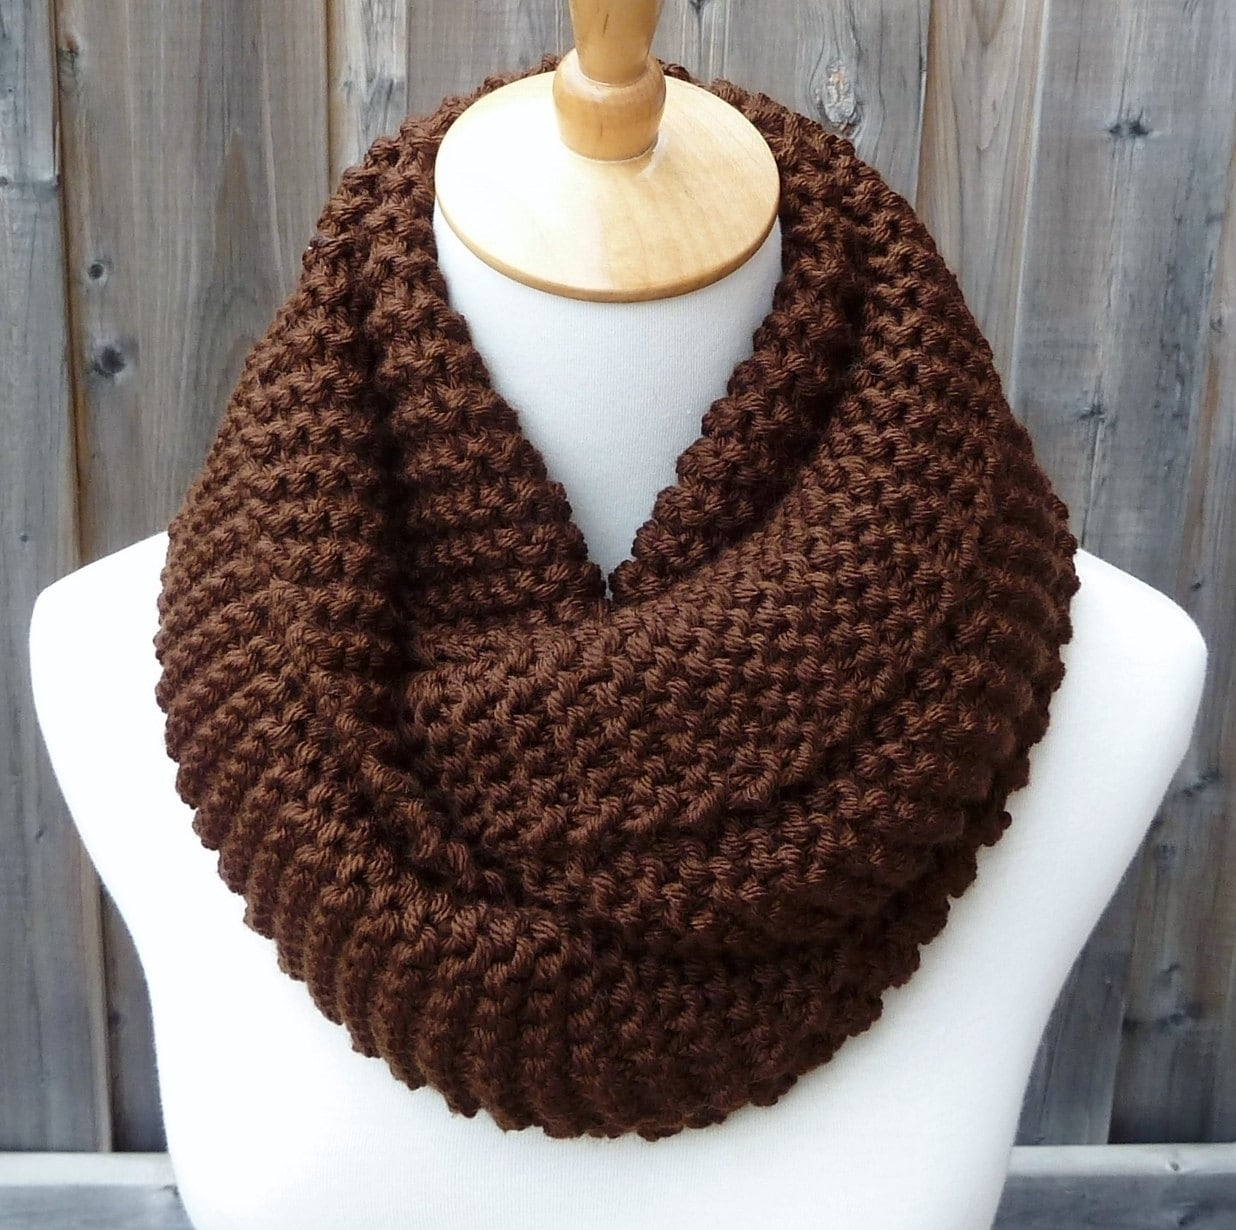 89f609f01e9f6 Chocolate Brown Infinity Scarf Dark Brown Infinity Scarf | Etsy